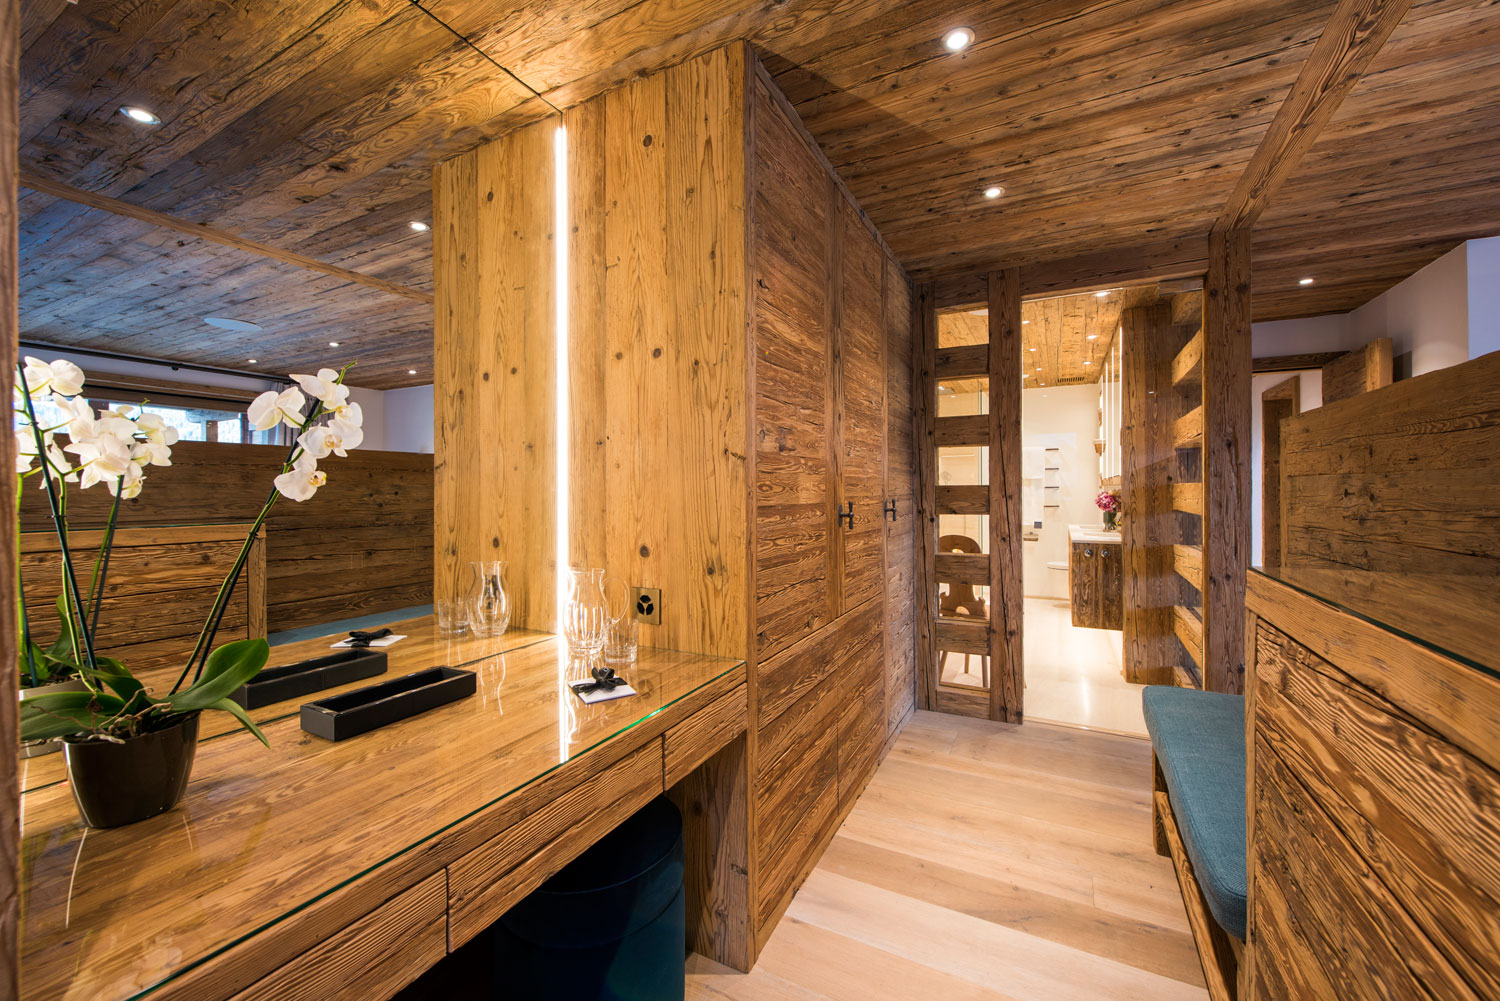 Nicola Hulbert Design Launches Luxurious Chalet Les Étrennes in Verbier 12